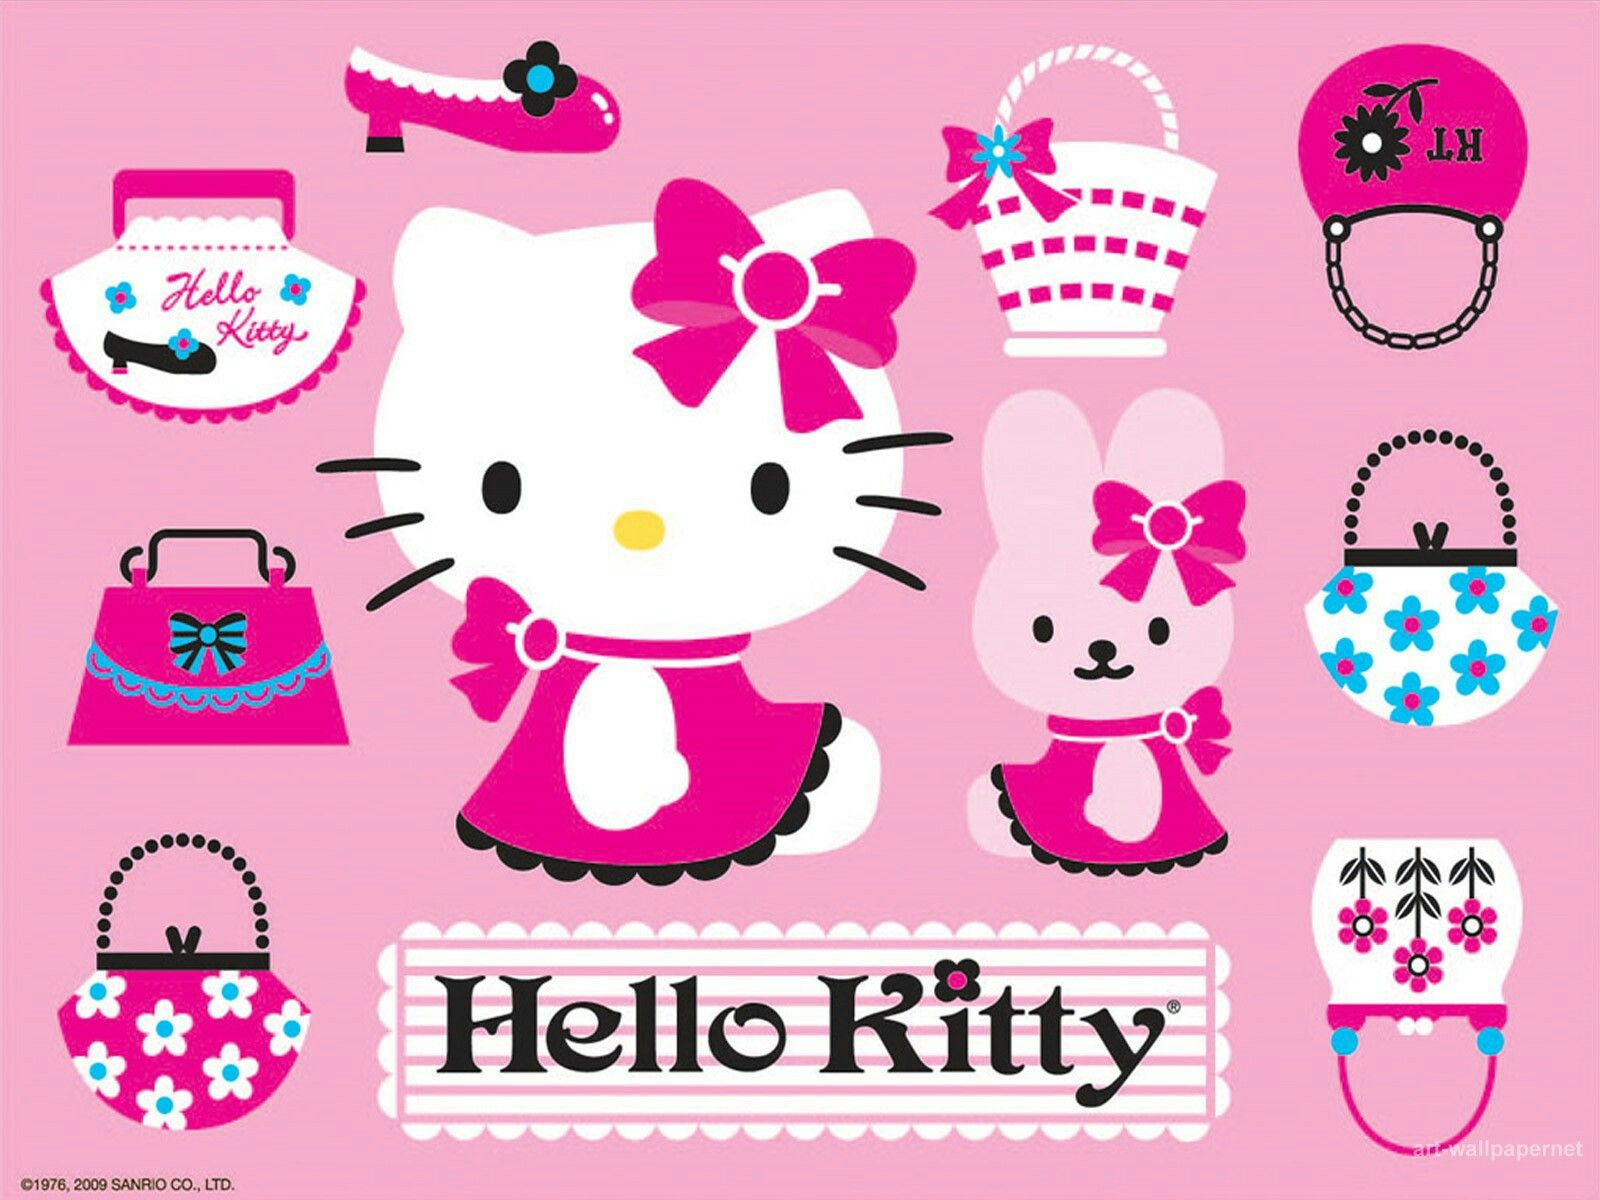 Must see Wallpaper Hello Kitty Rose - d074f43636ed3865a049c20bff65cfe9  Snapshot_469891.jpg